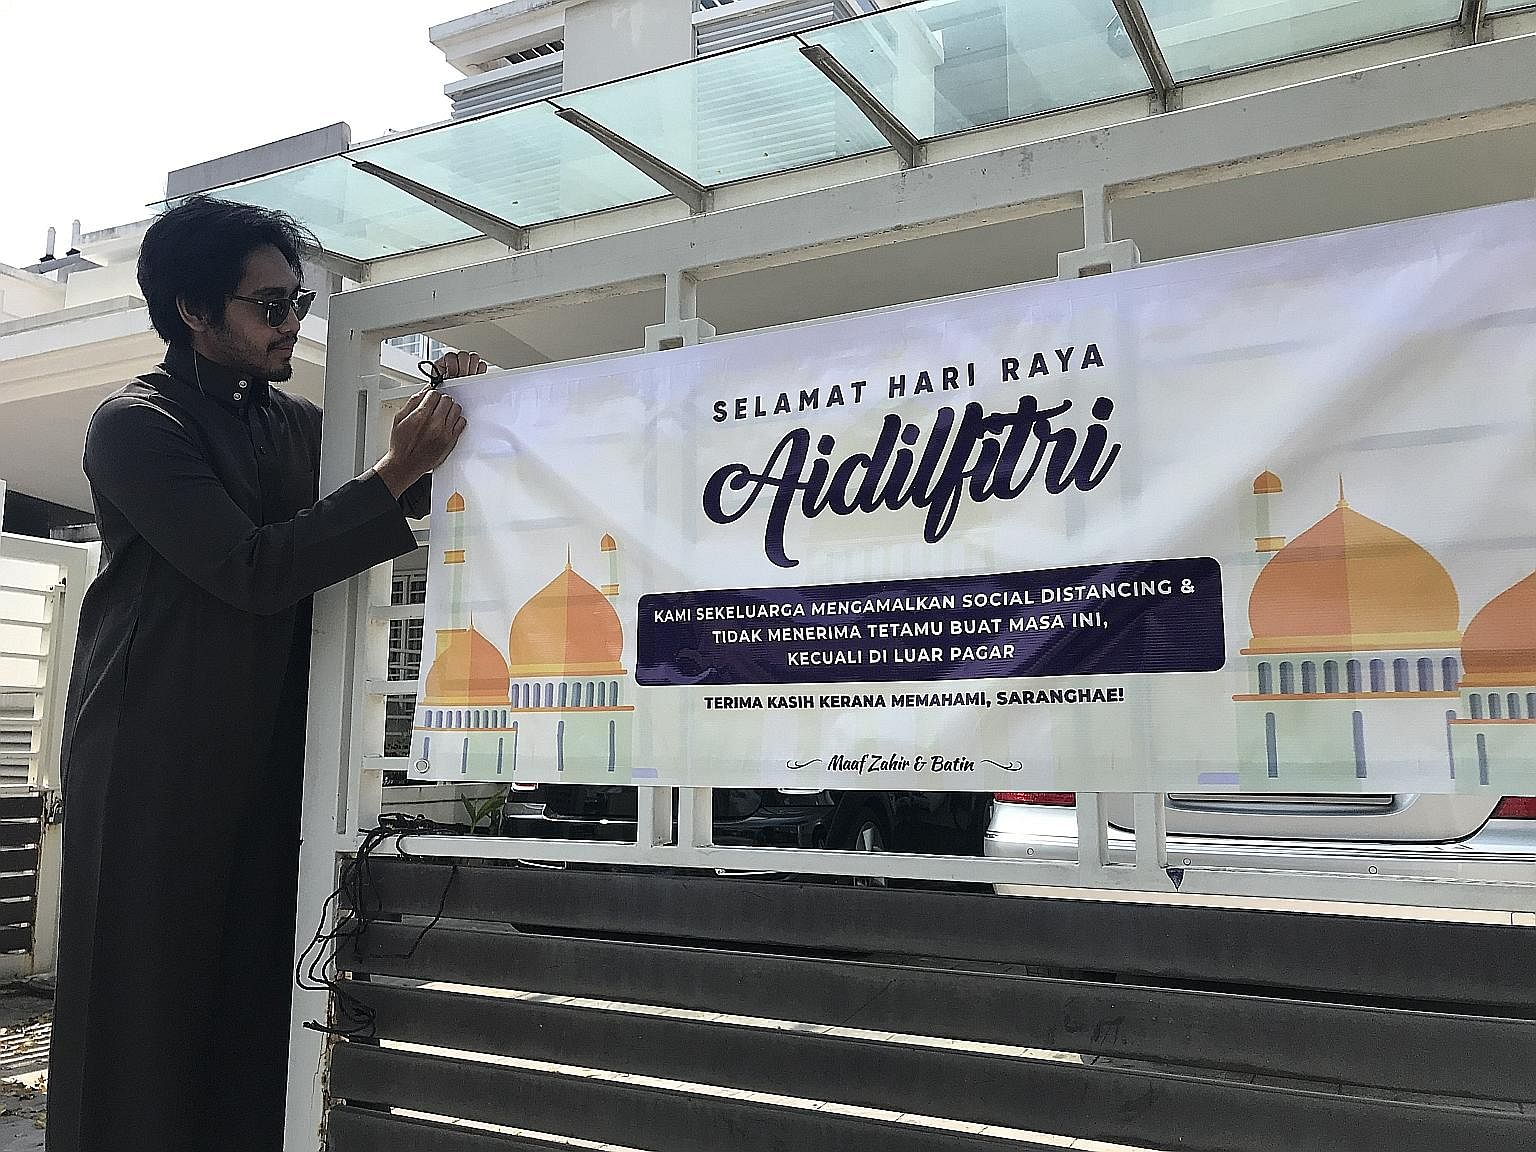 Mr Ahmad Afif Zainol putting up a Hari Raya banner outside his home in Alam Impian, Selangor. It comes with the message that the family is not accepting visitors amid the coronavirus pandemic.